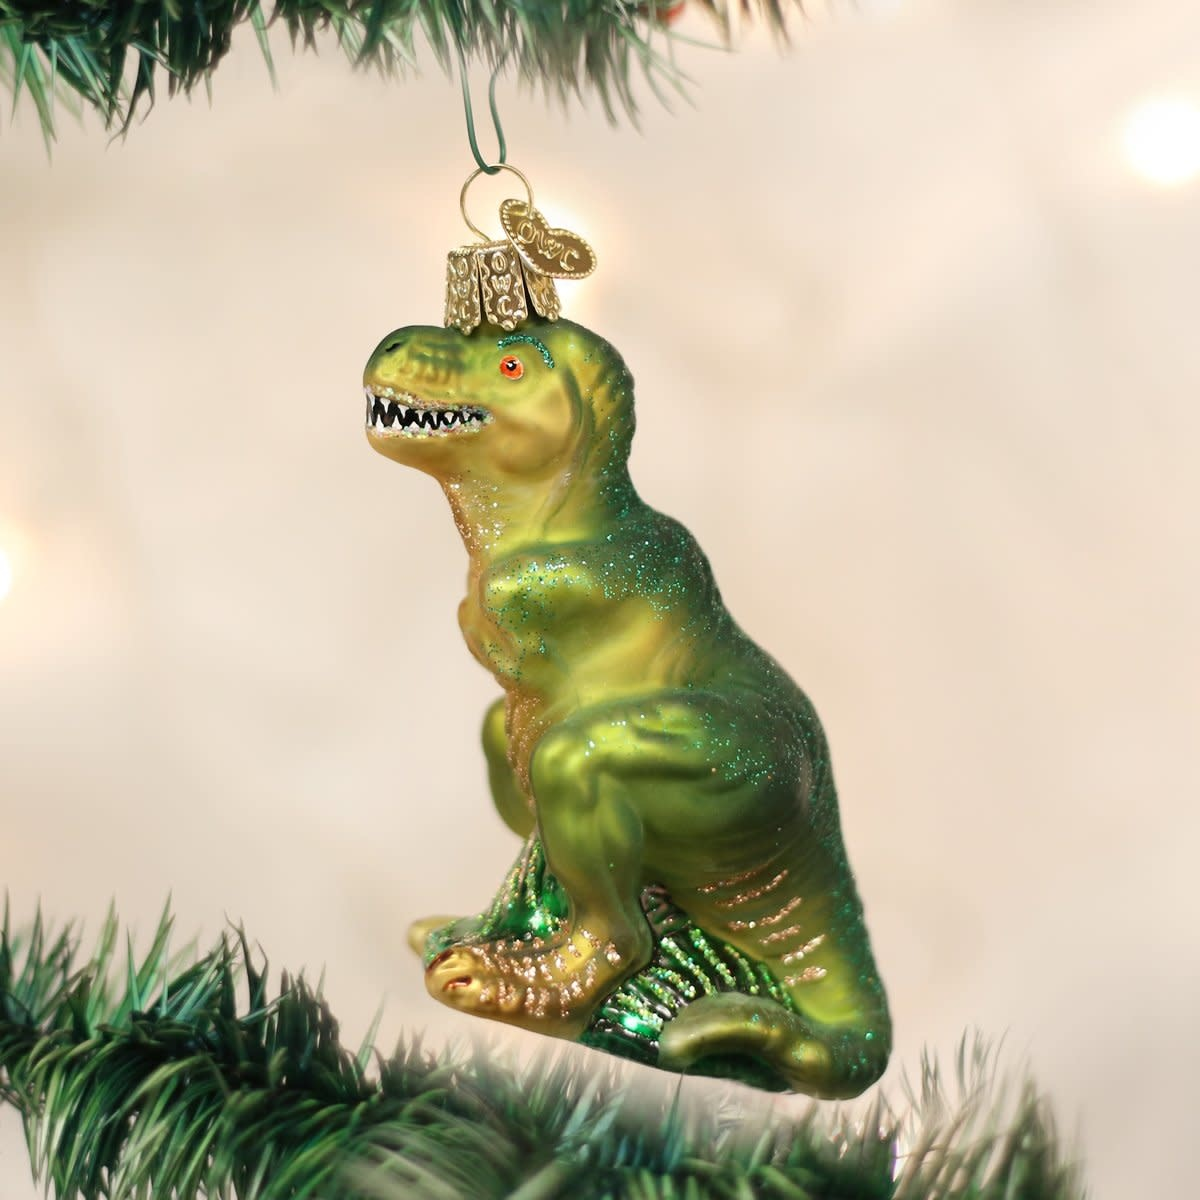 Old World Christmas OWC T-Rex Ornament